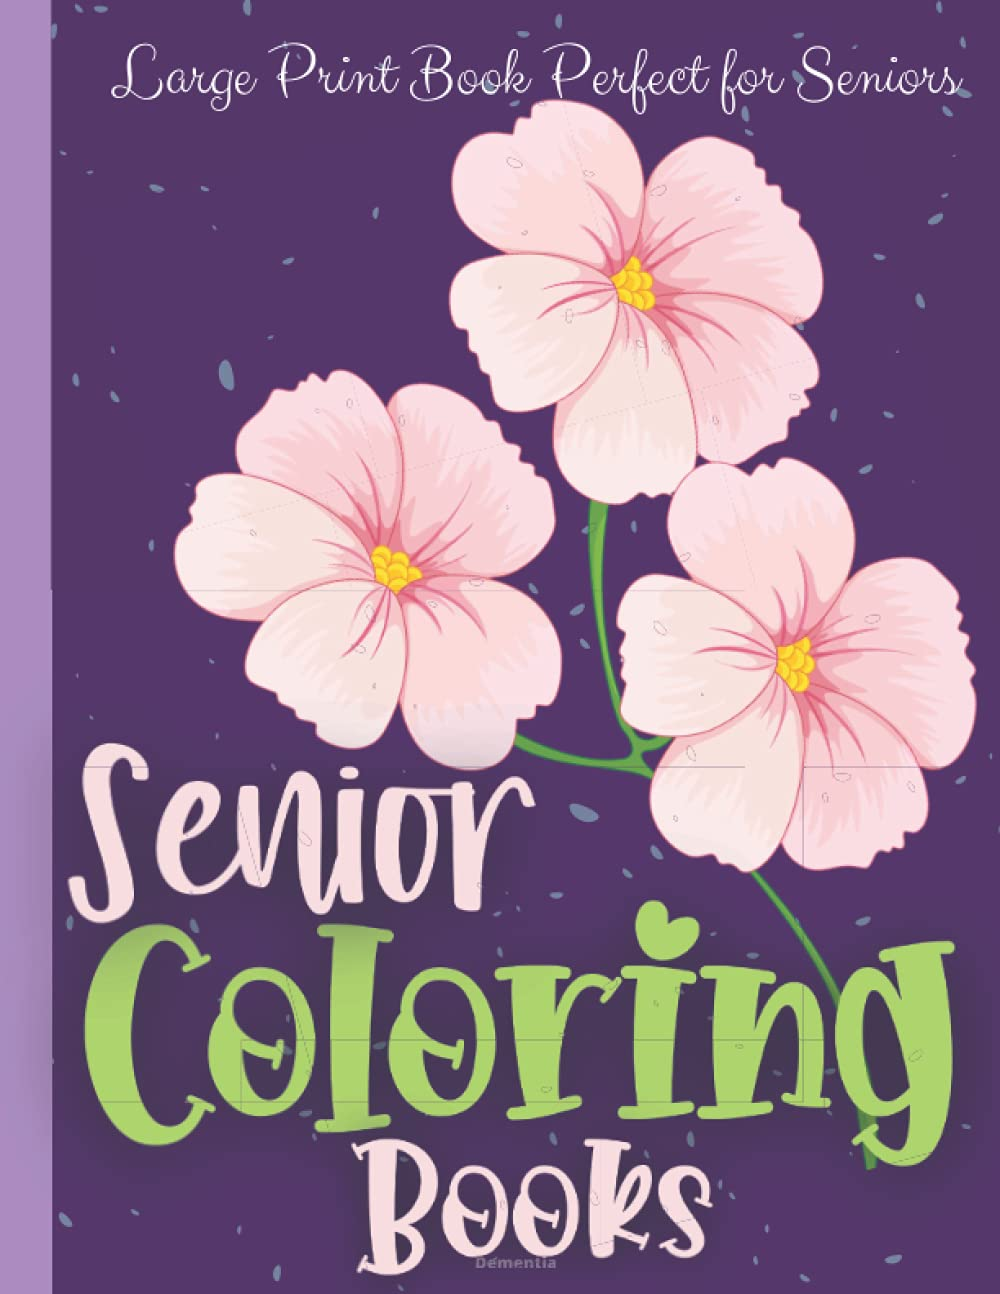 Senior coloring books Dementia: Coloring books for Seniors Birds, Flowers, Butterflies and more. Large Print book perfect for Seniors, Alzheimer's, Parkinson's Patients (Coloring Book for Seniors)